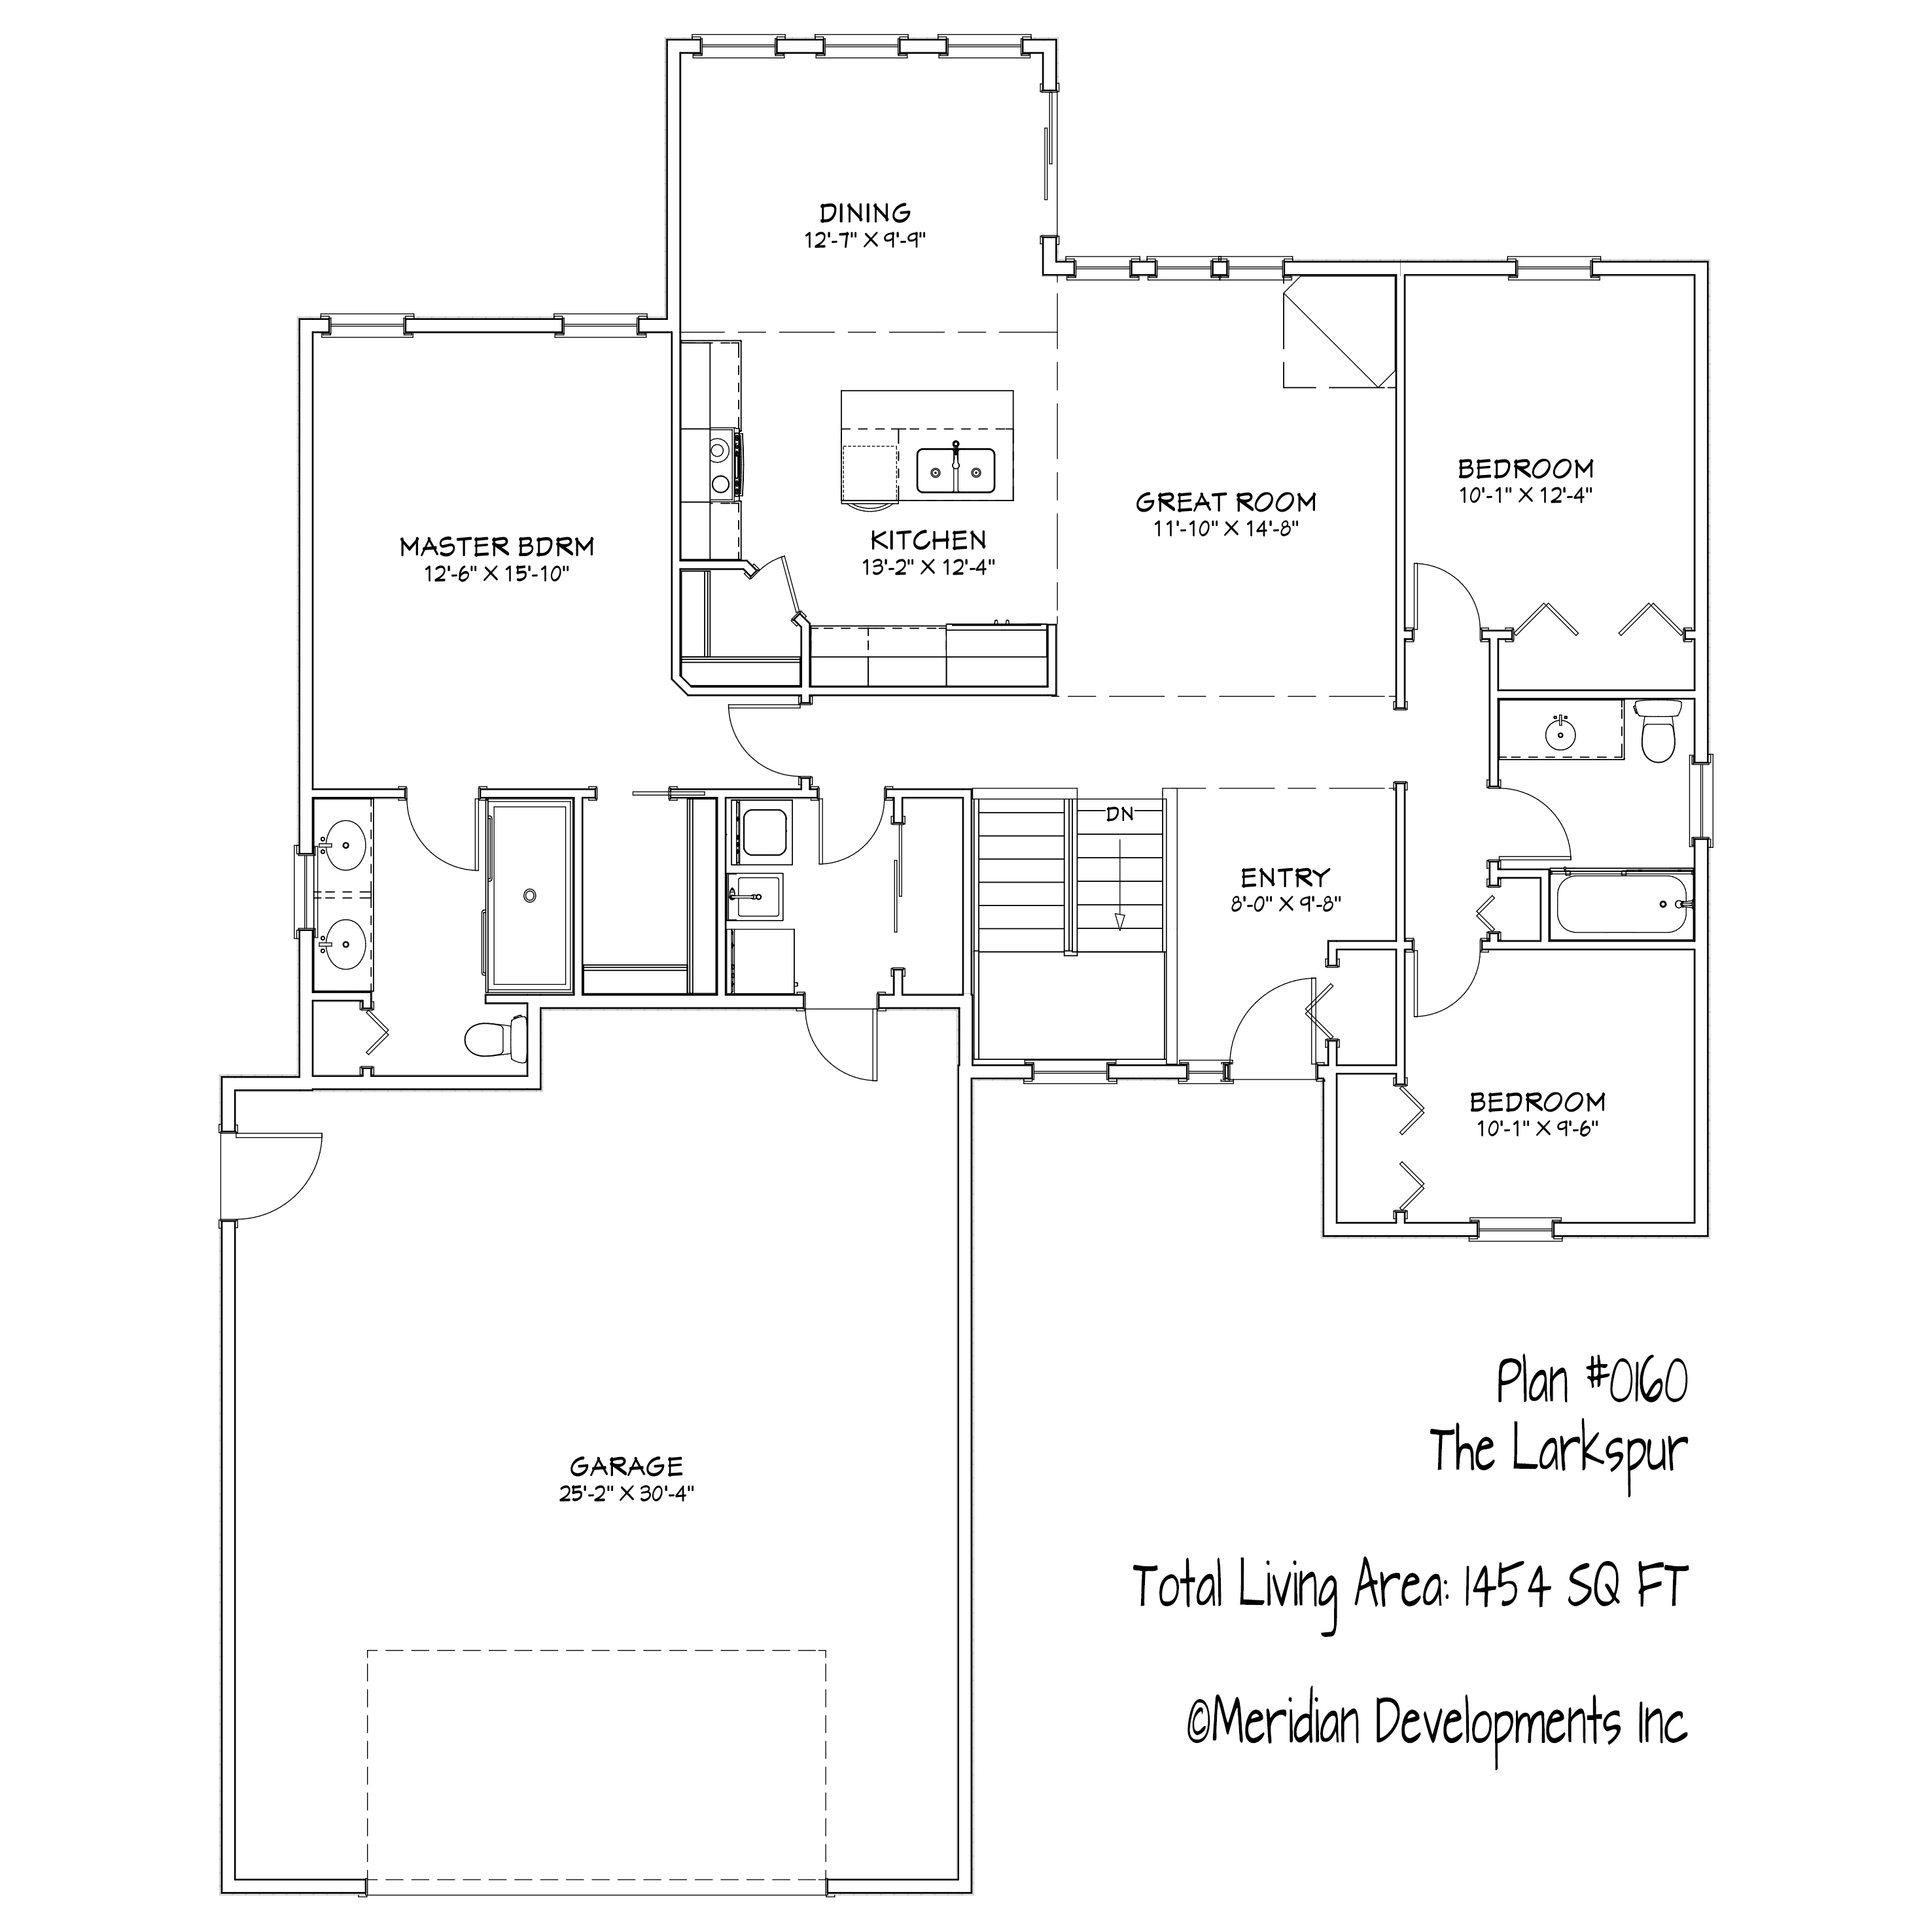 Larkspur Floor Plan.jpg